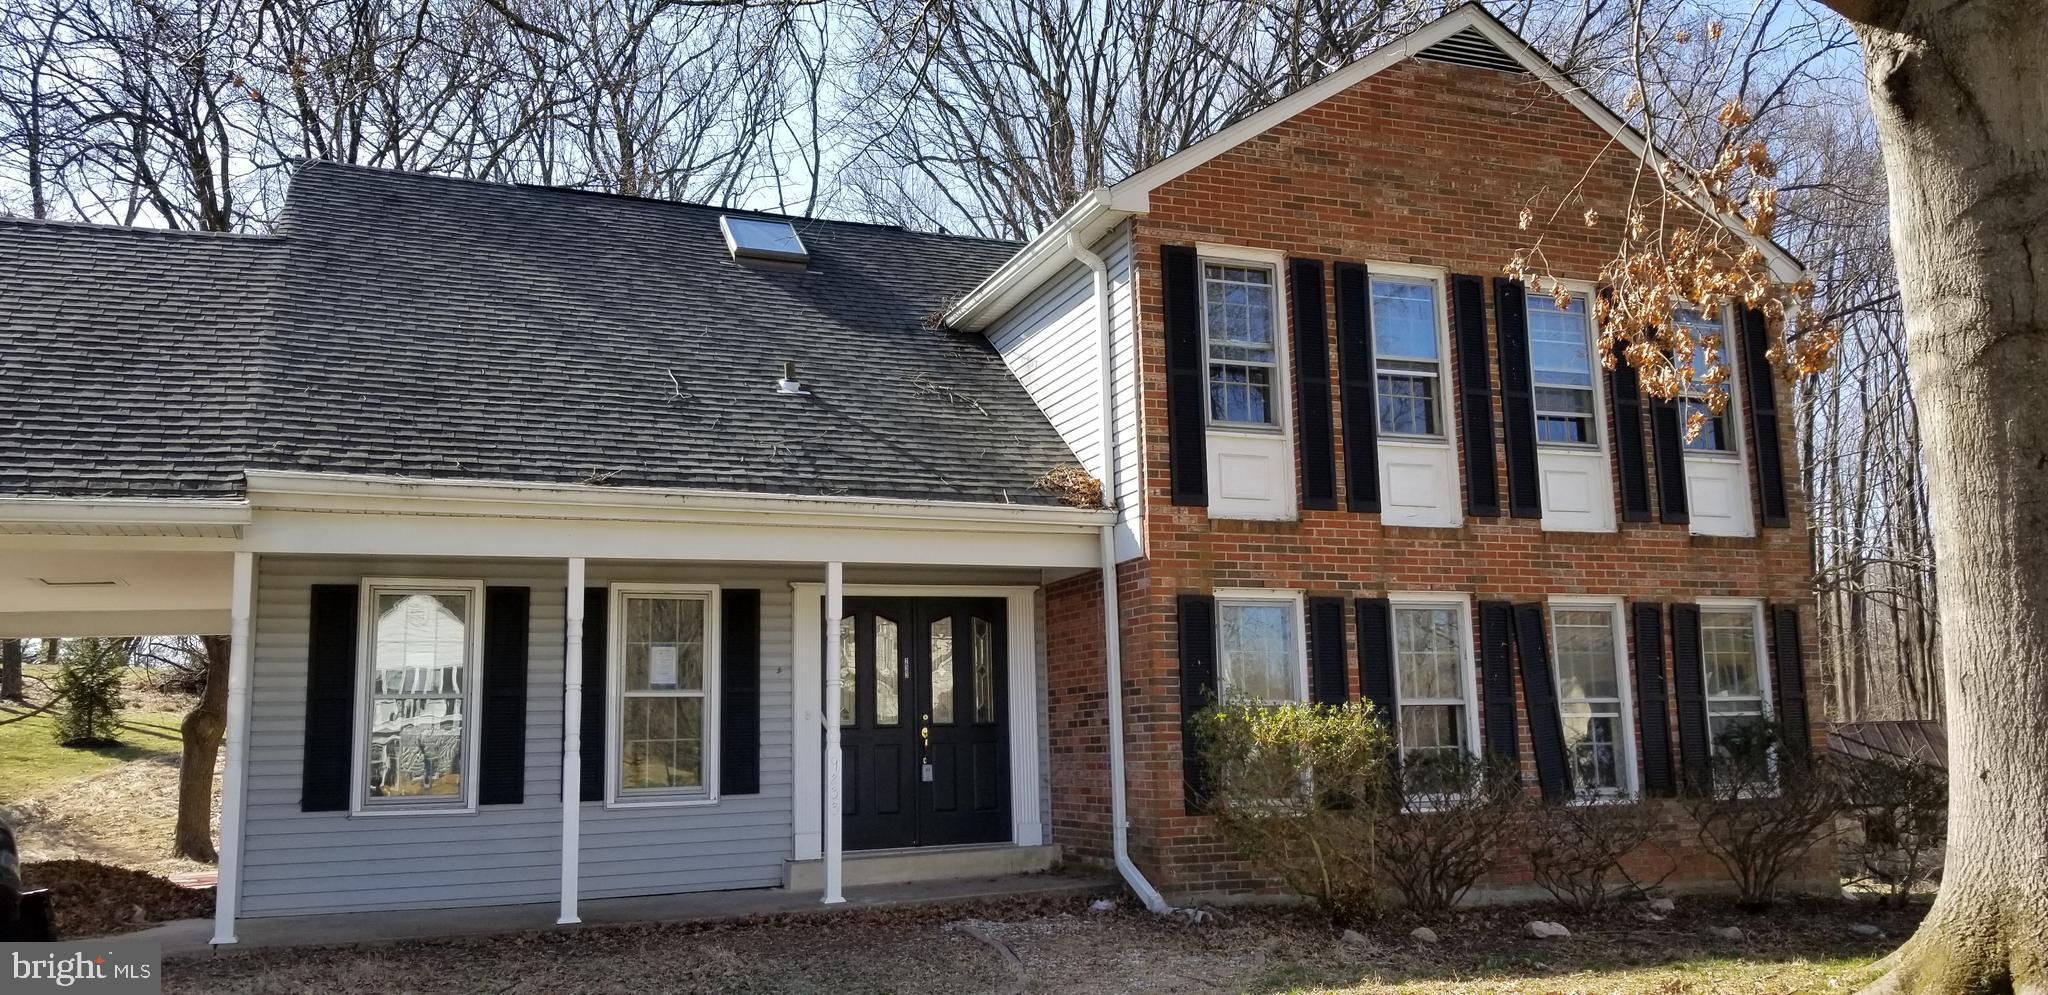 Welcome Home!!! 5 bedroom home in Thunder Hill - Quiet tree lined Cul-de-Sac. Brick front - Hardwood